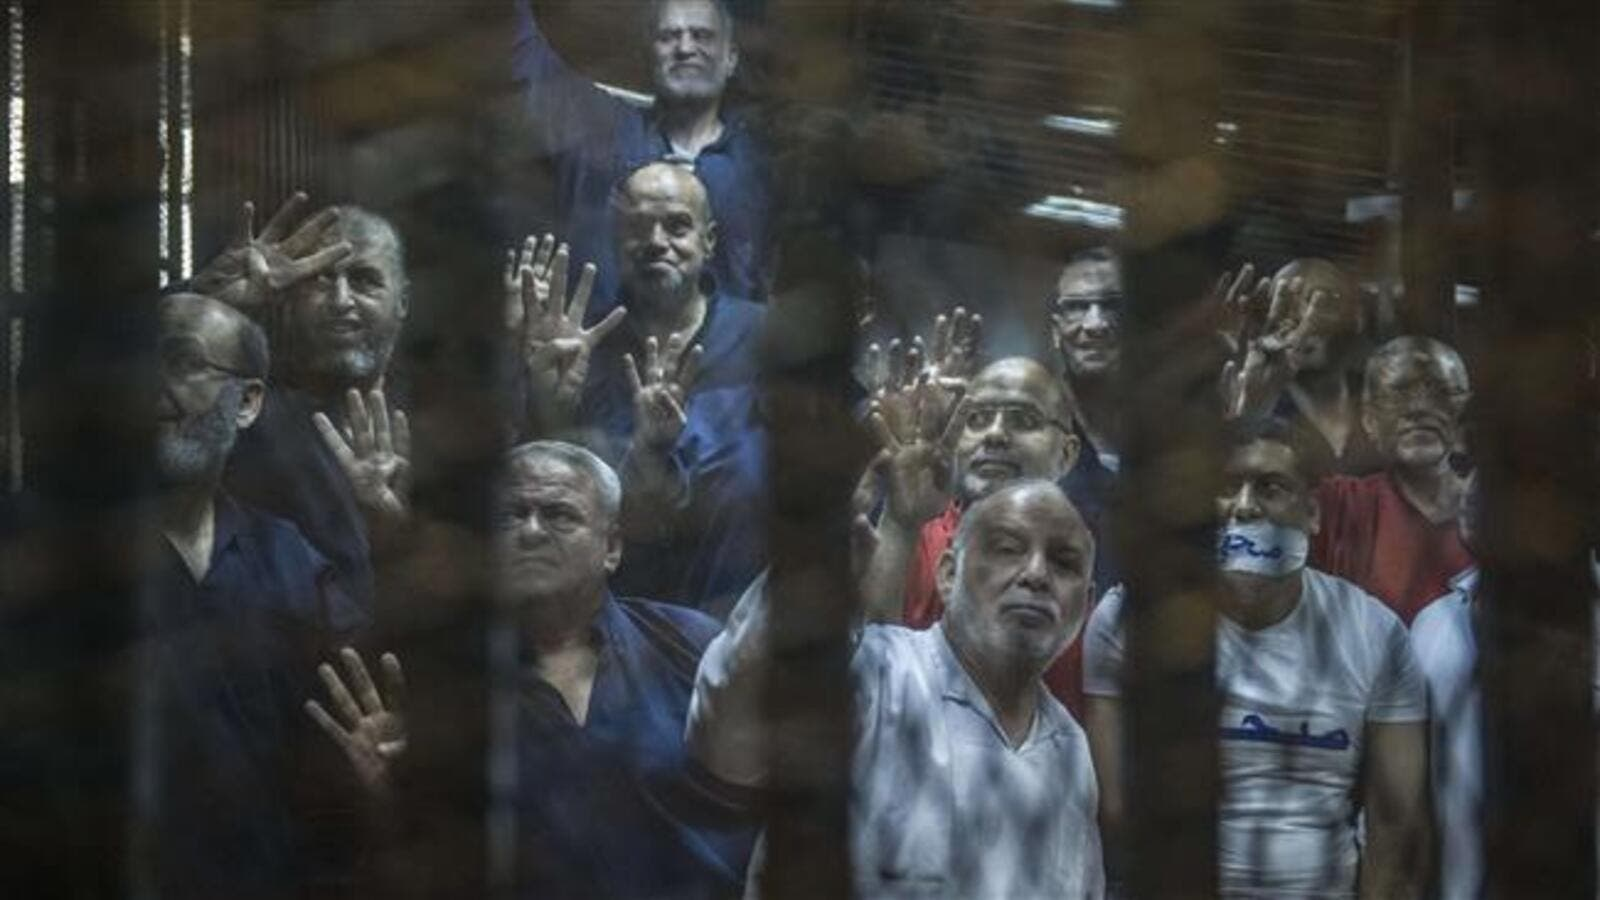 Senior figures of Egypt's Muslim Brotherhood gesture from the defendants cage during their trial at the police academy on the outskirts of Cairo on June 2, 2015. (AFP/File)